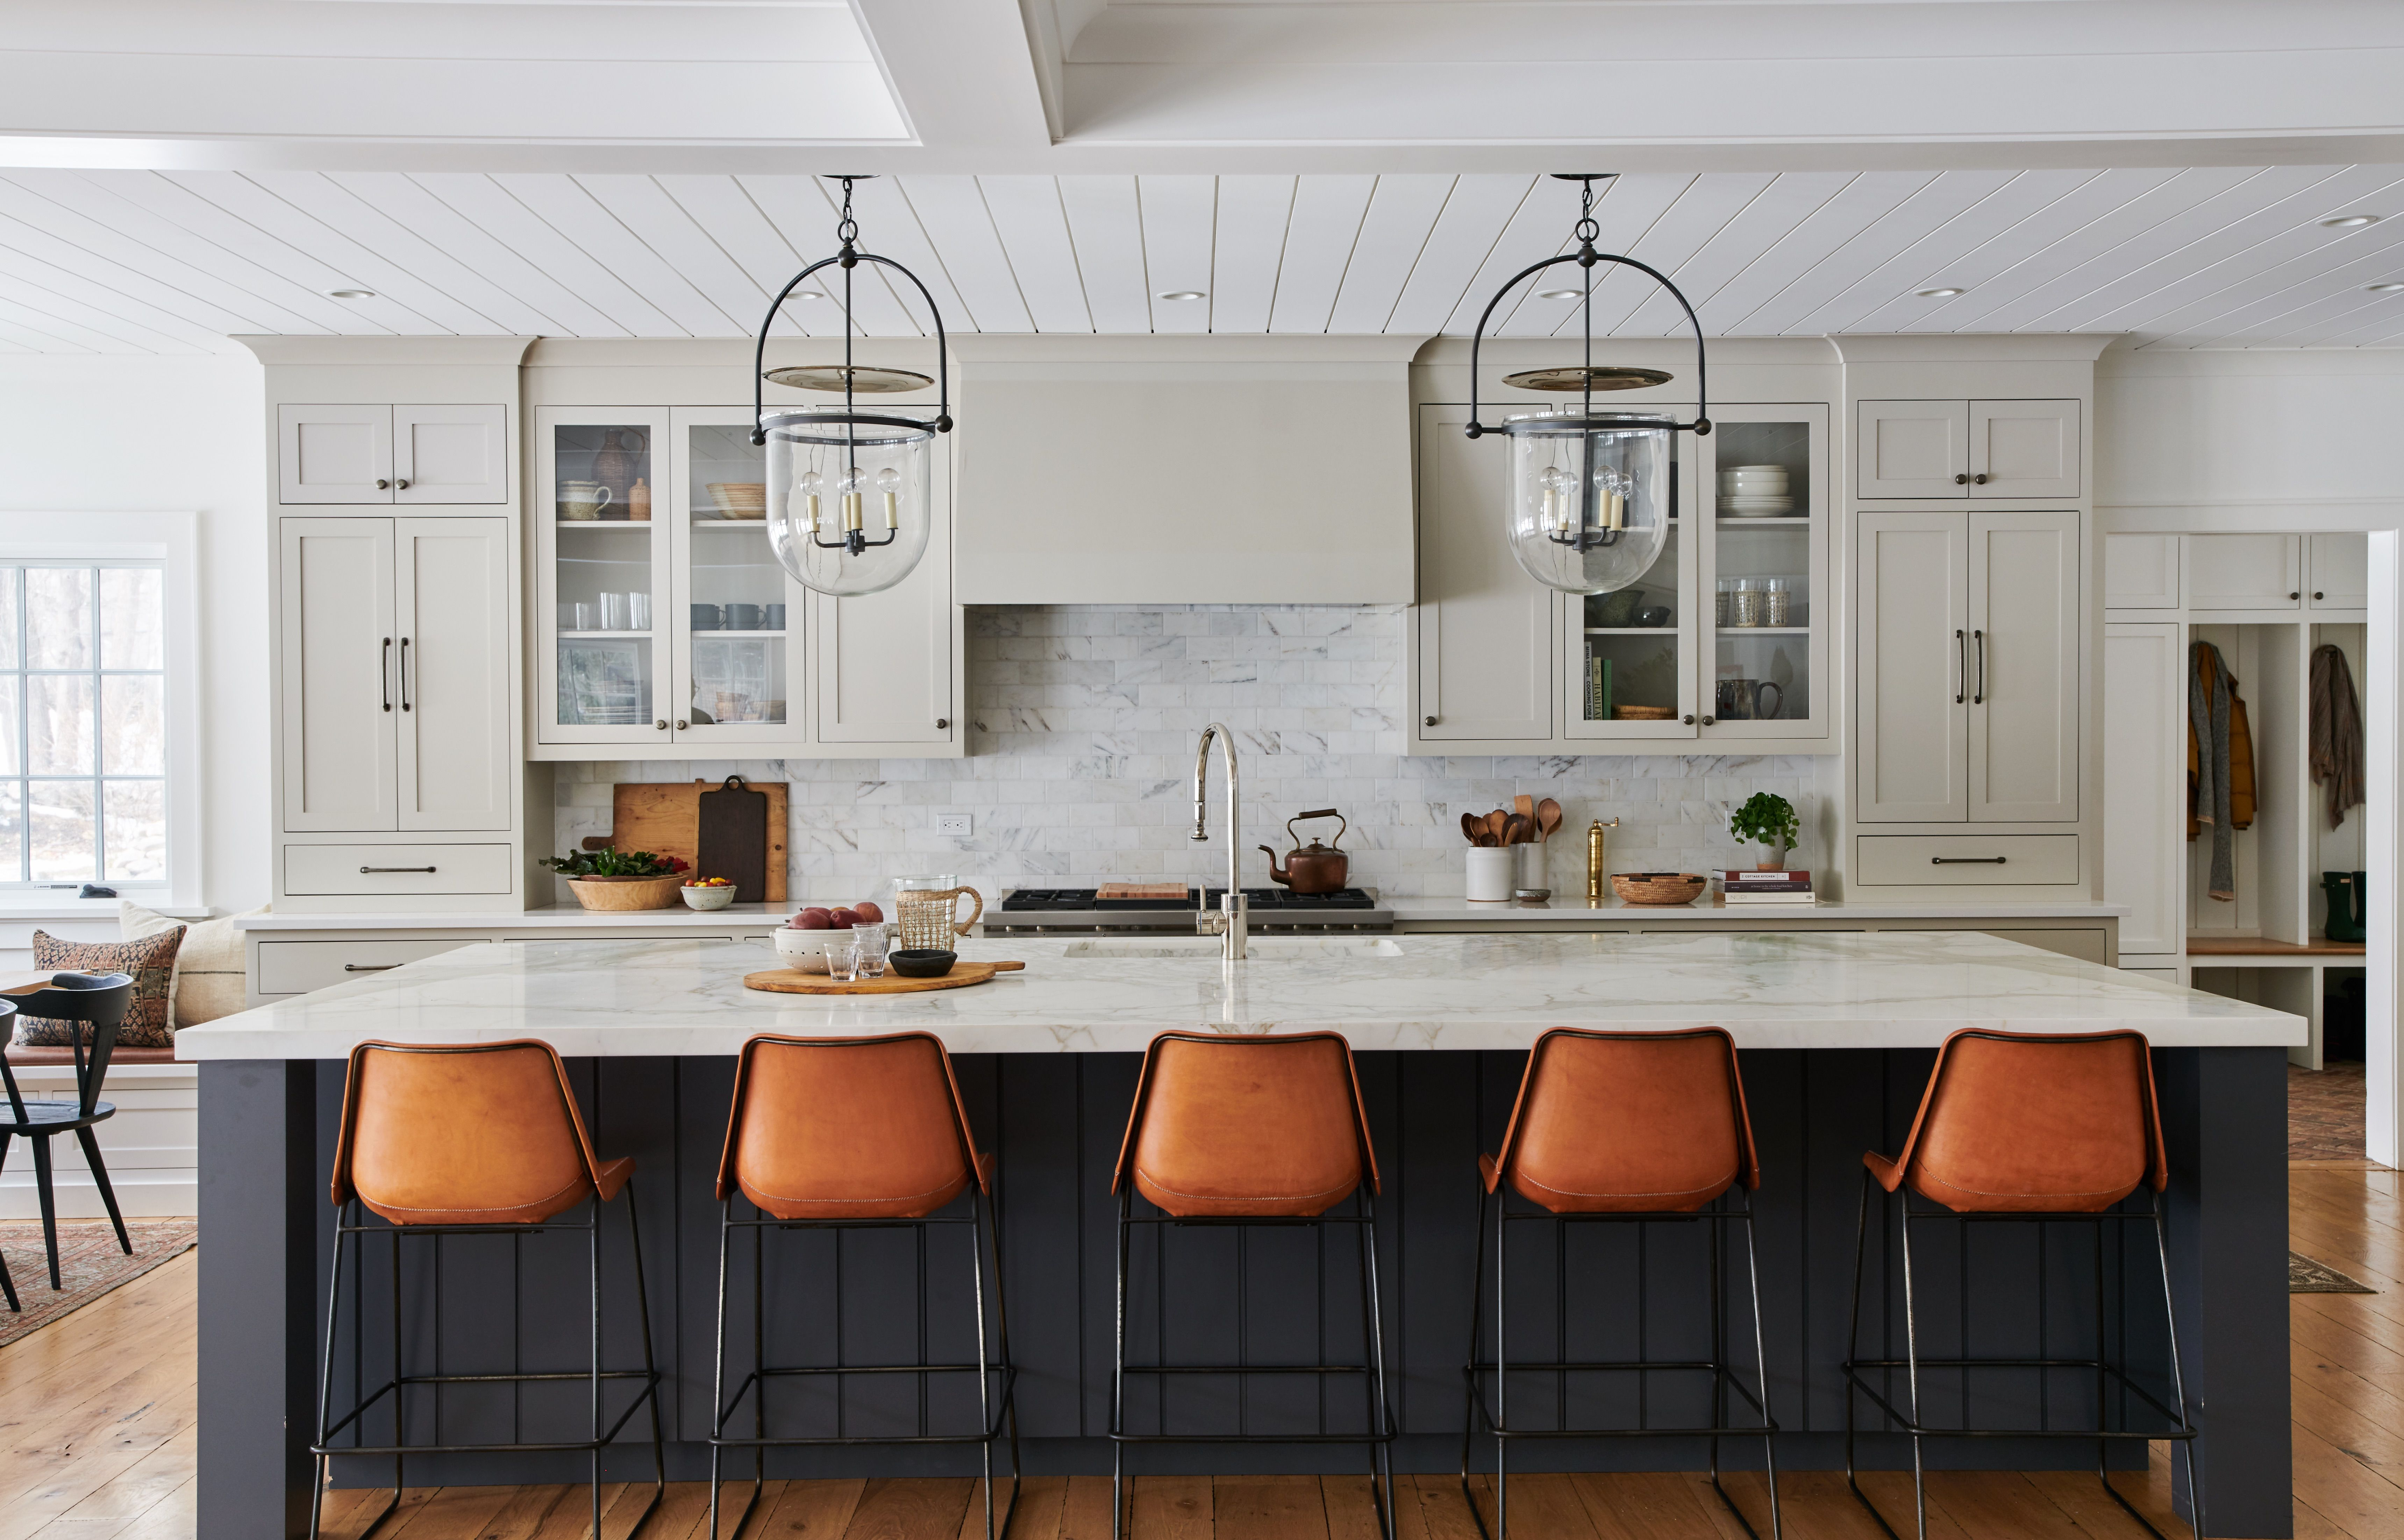 Wrought Iron By Benjamin Moore Revere Pewter By Benjamin Moore Simply White By Benjamin Moore Kitchen Inspirations Kitchen Remodel Amber Interiors